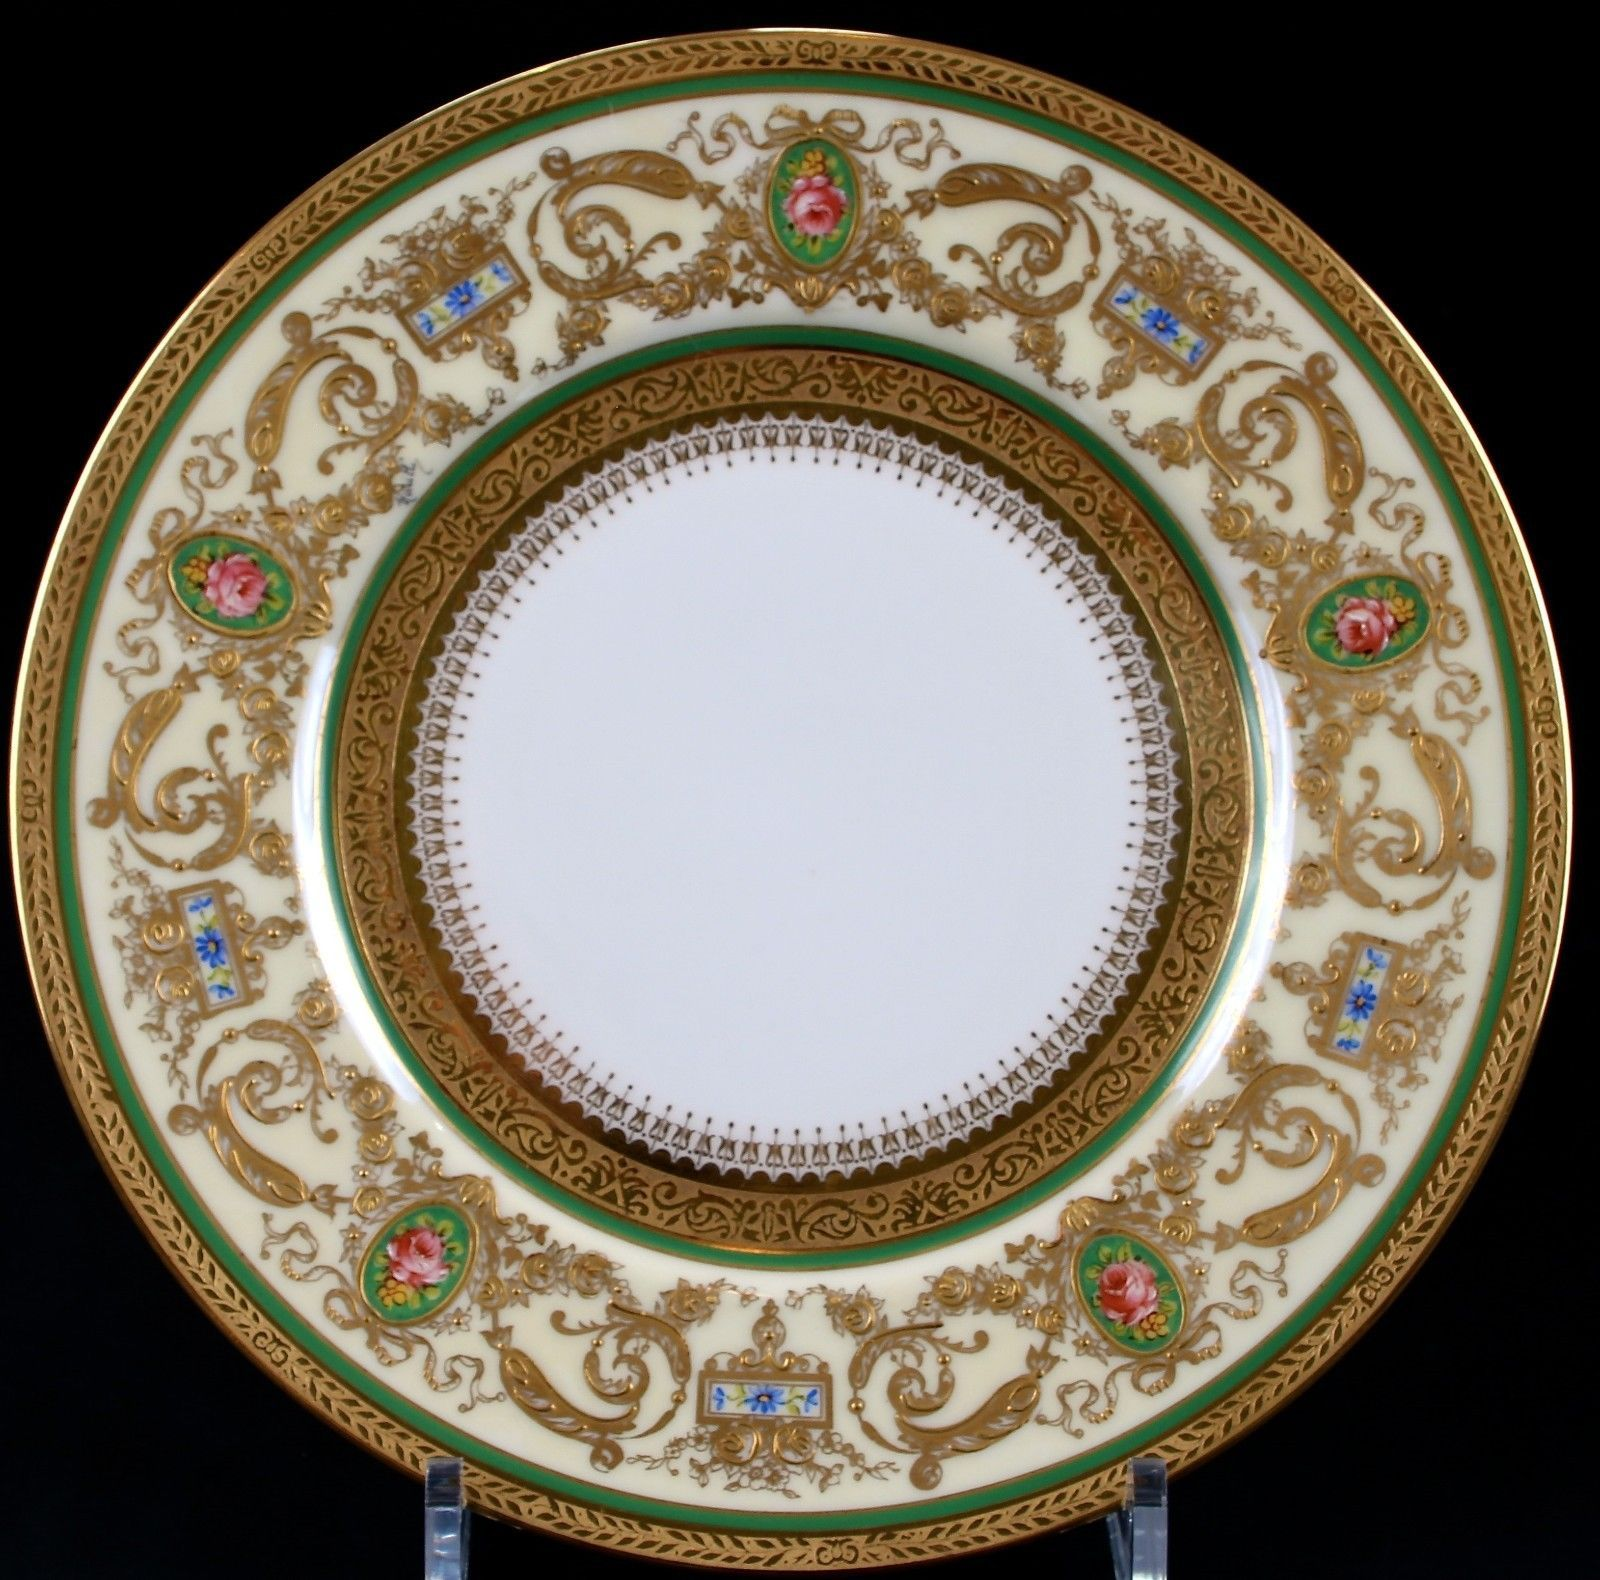 Limoges China Patterns Gold Trim Simple Inspiration Ideas